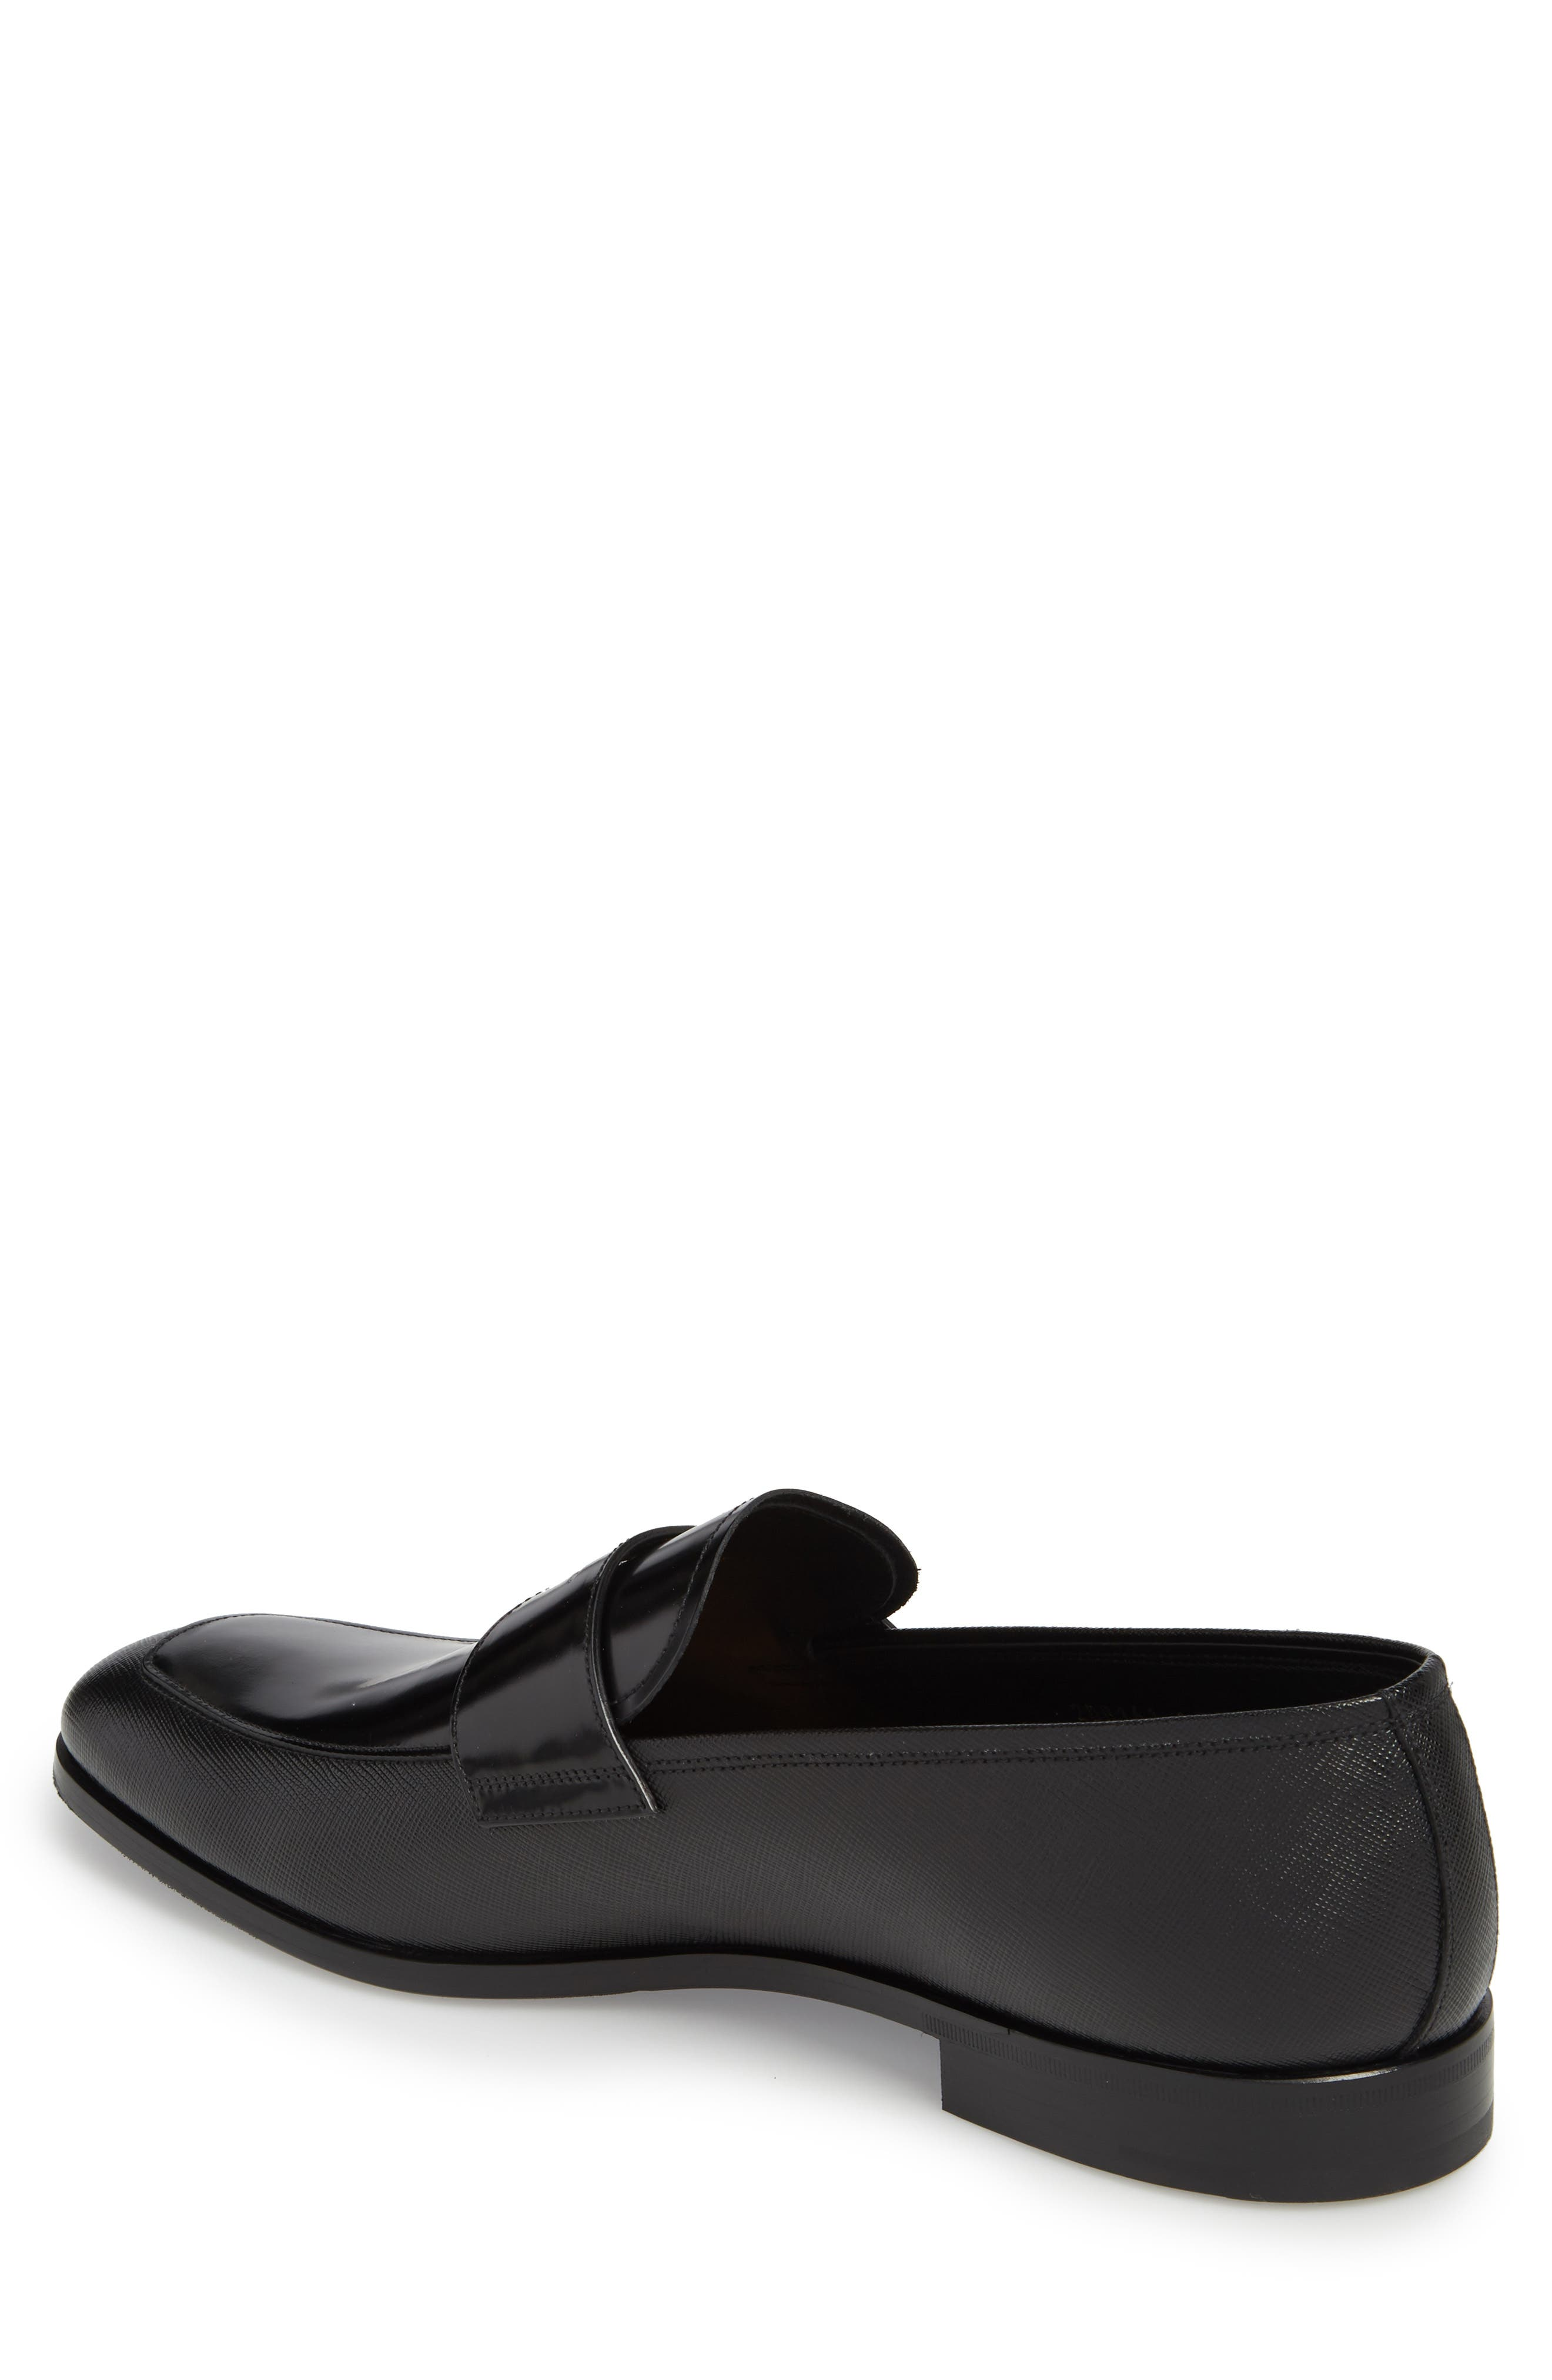 Saffiano Leather Penny Loafer,                             Alternate thumbnail 2, color,                             NERO